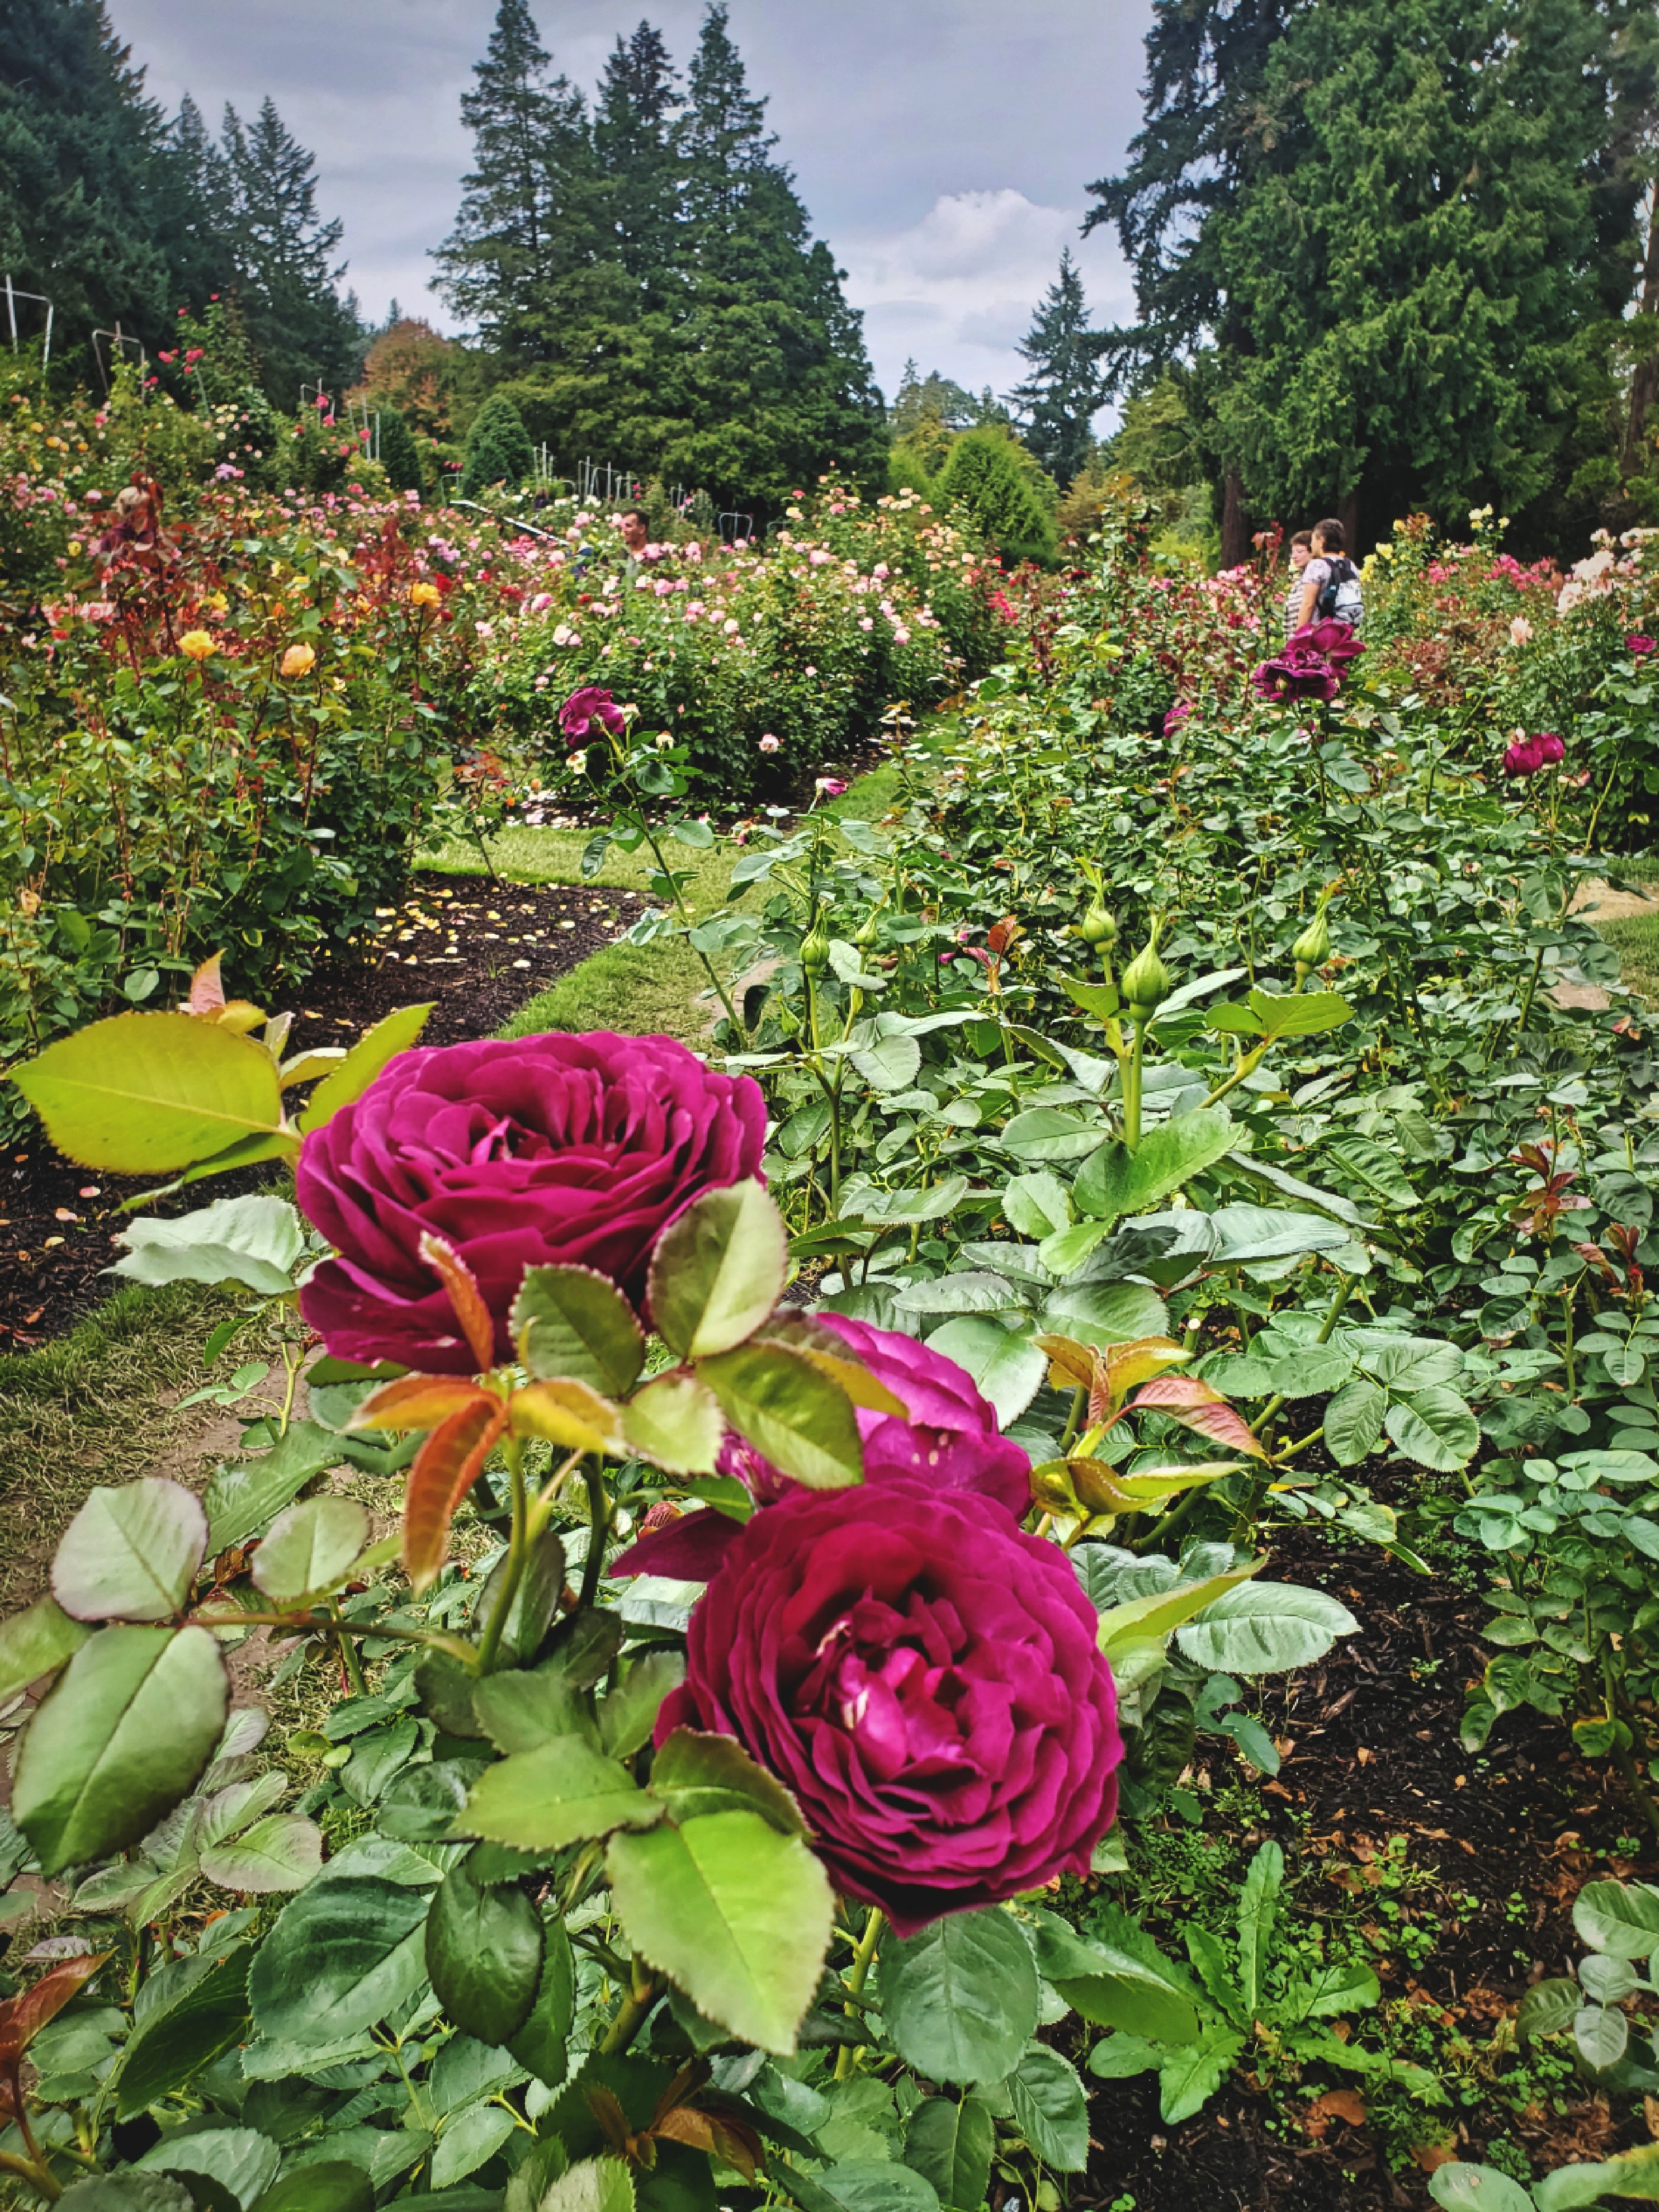 You wouldn't expect to find a formal English rose garden like this in the middle of Portland!